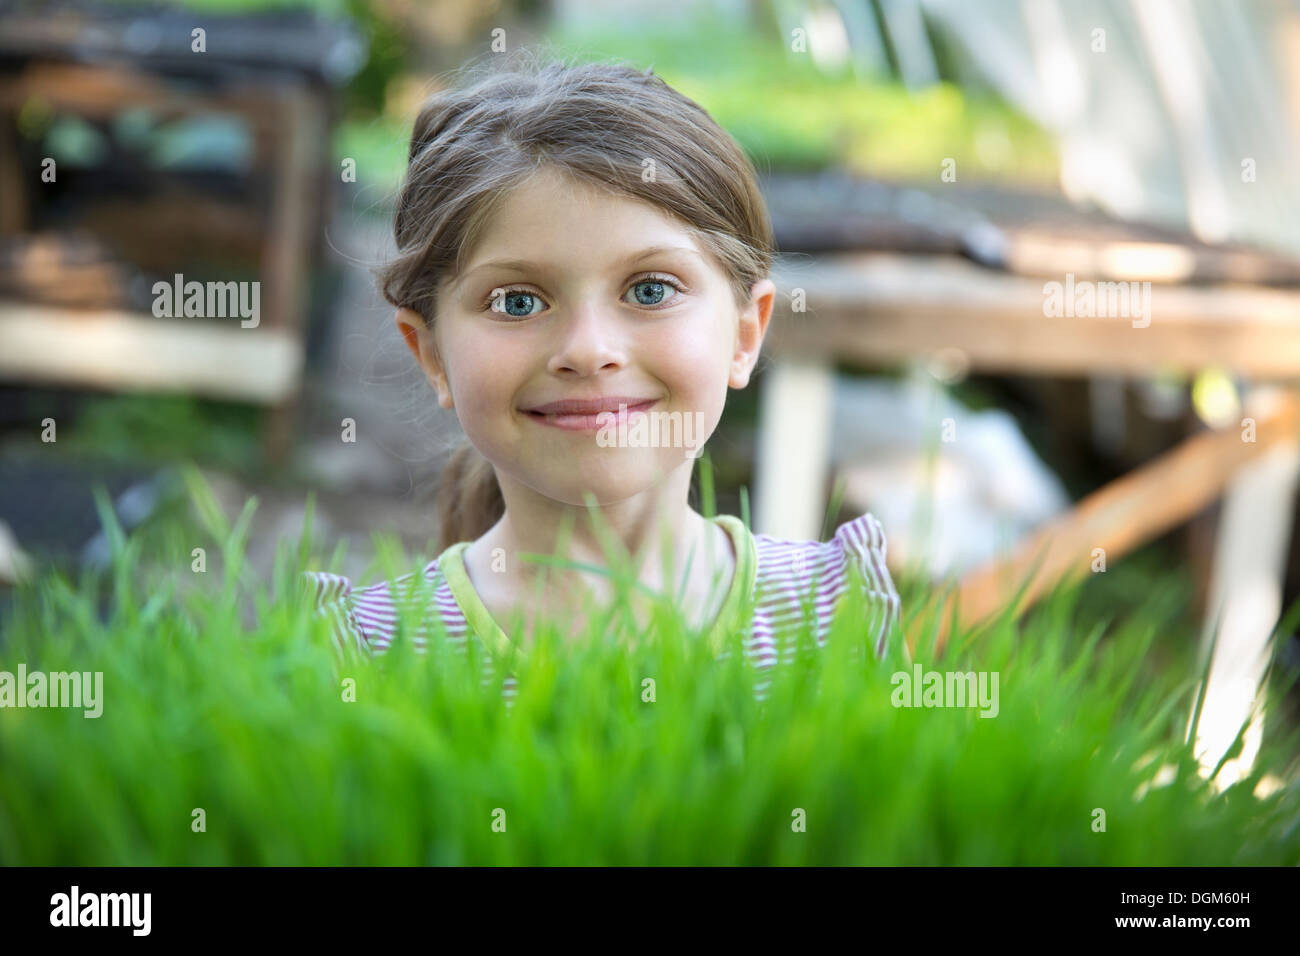 On the farm. A girl standing smiling by a glasshouse bench looking over the green shoots of seedlings growing in - Stock Image